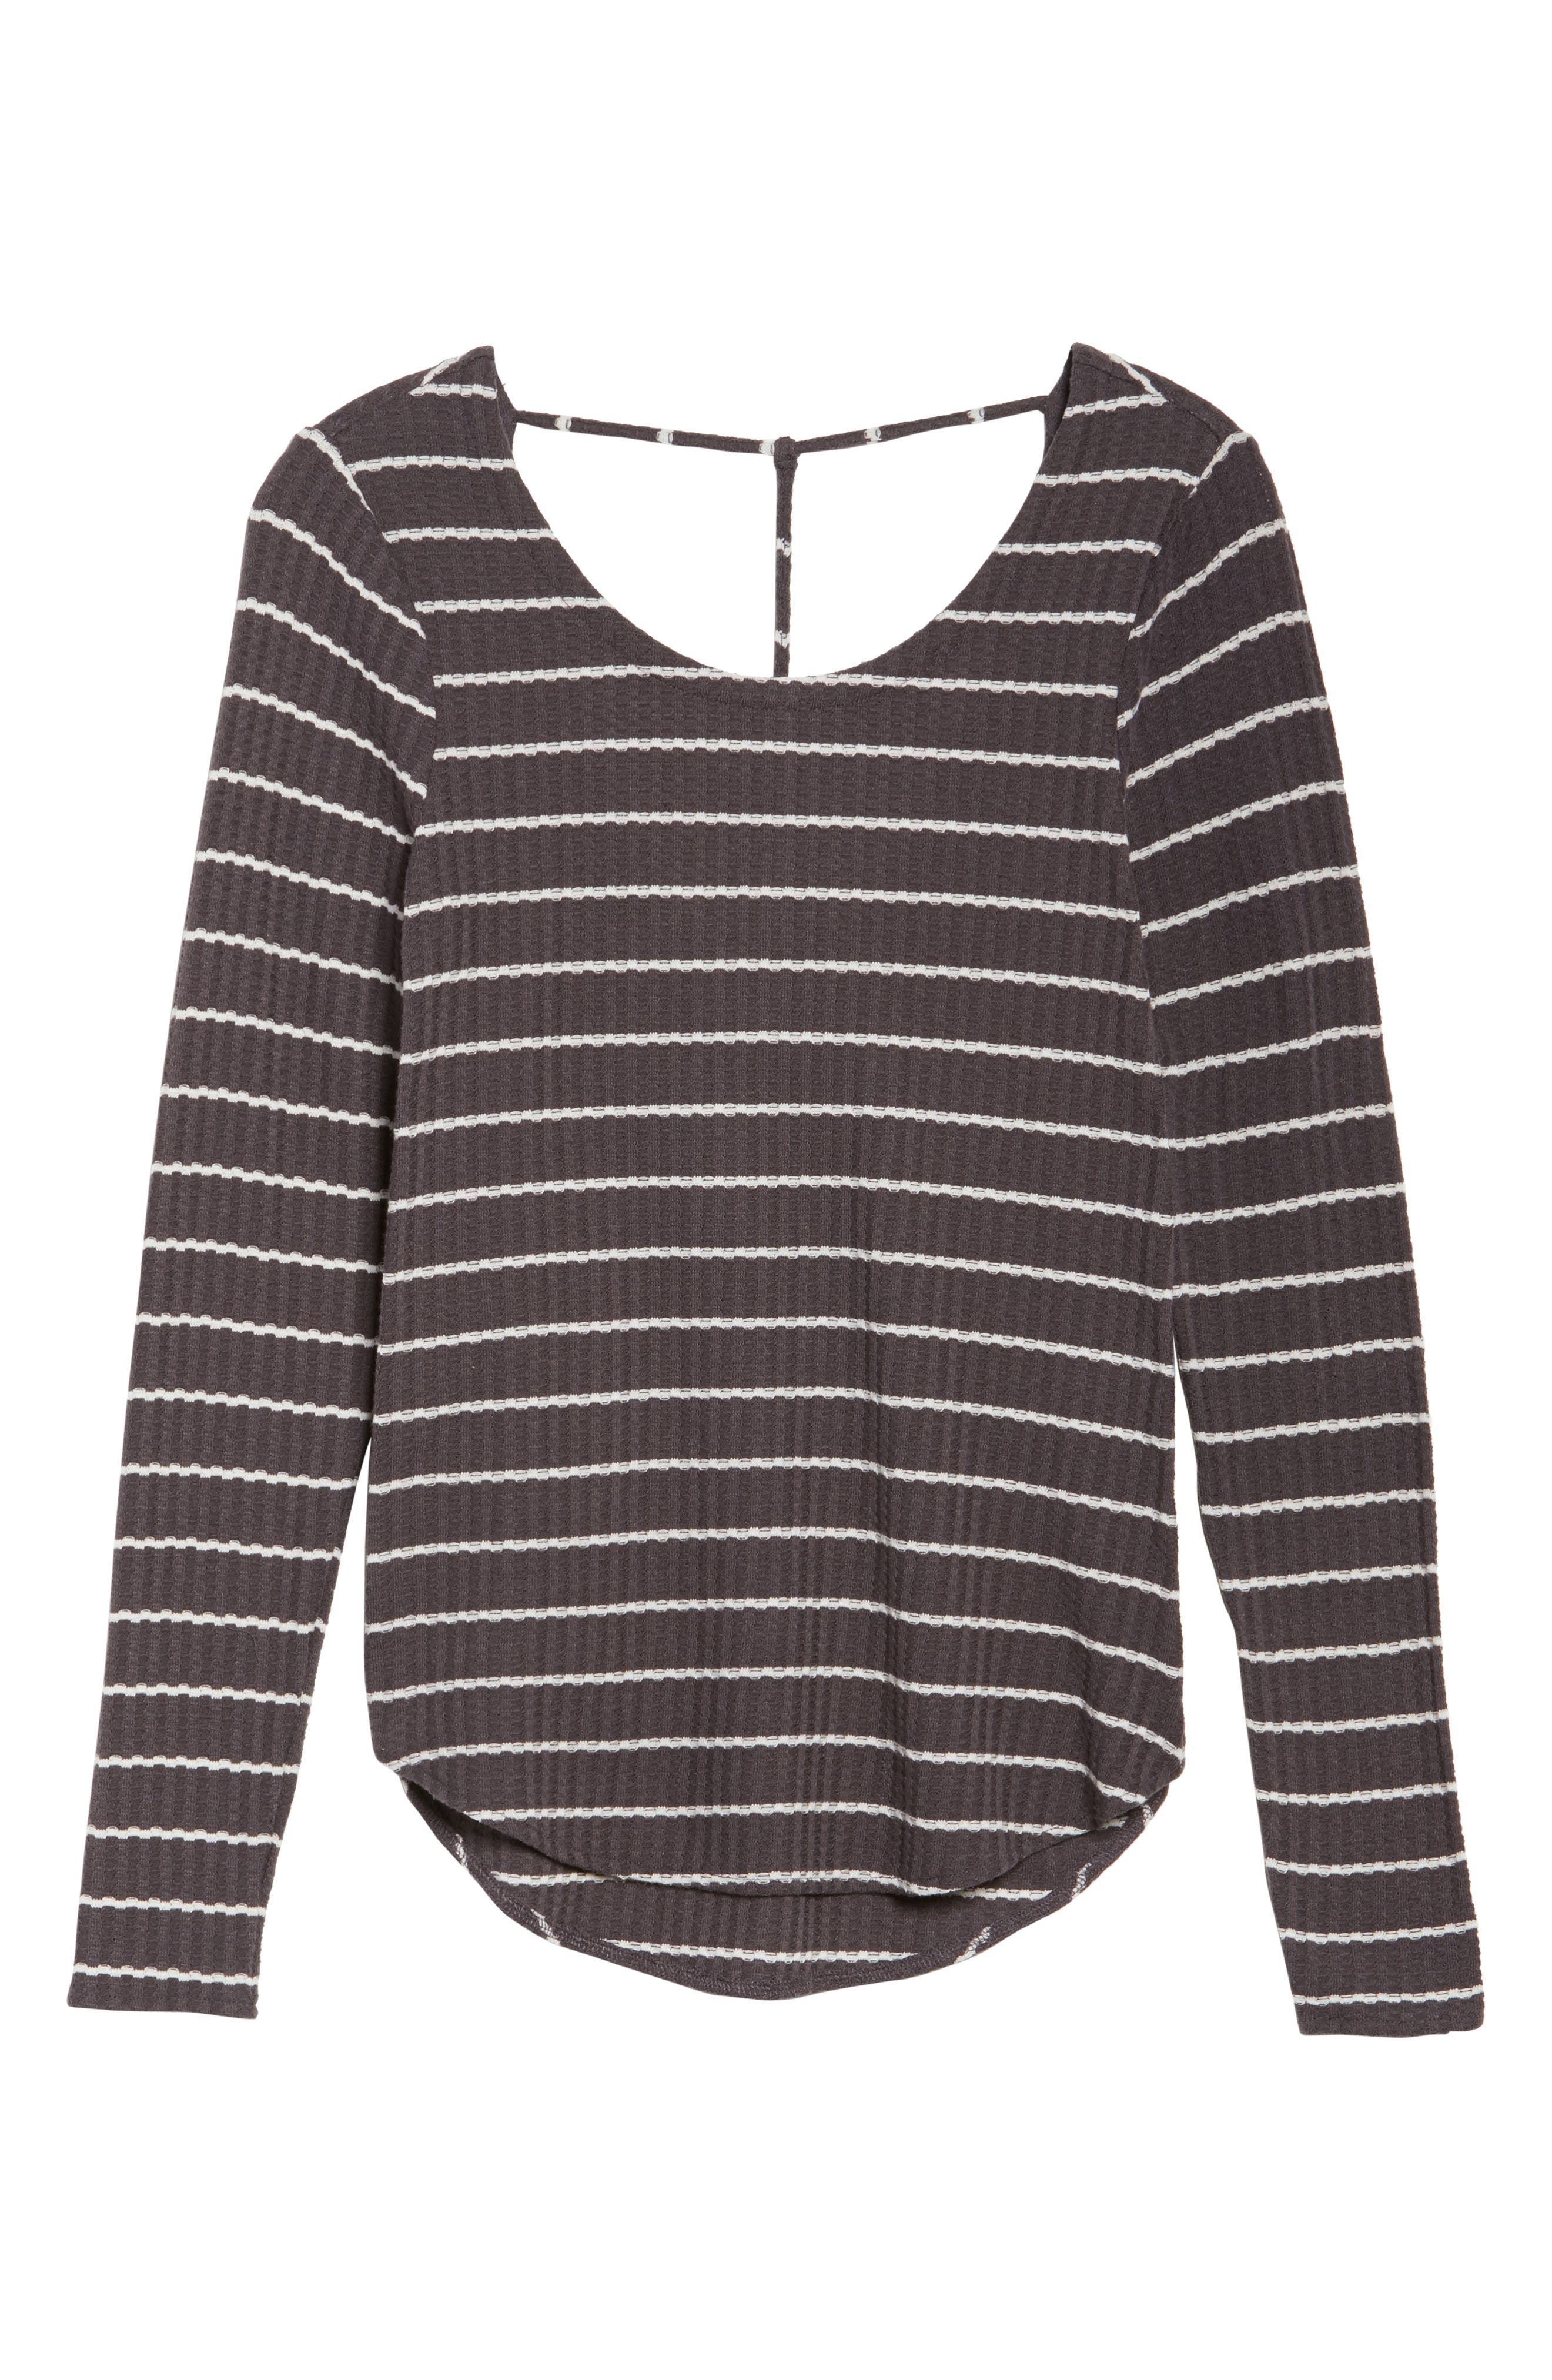 Thermal Knit Tee,                             Alternate thumbnail 6, color,                             001